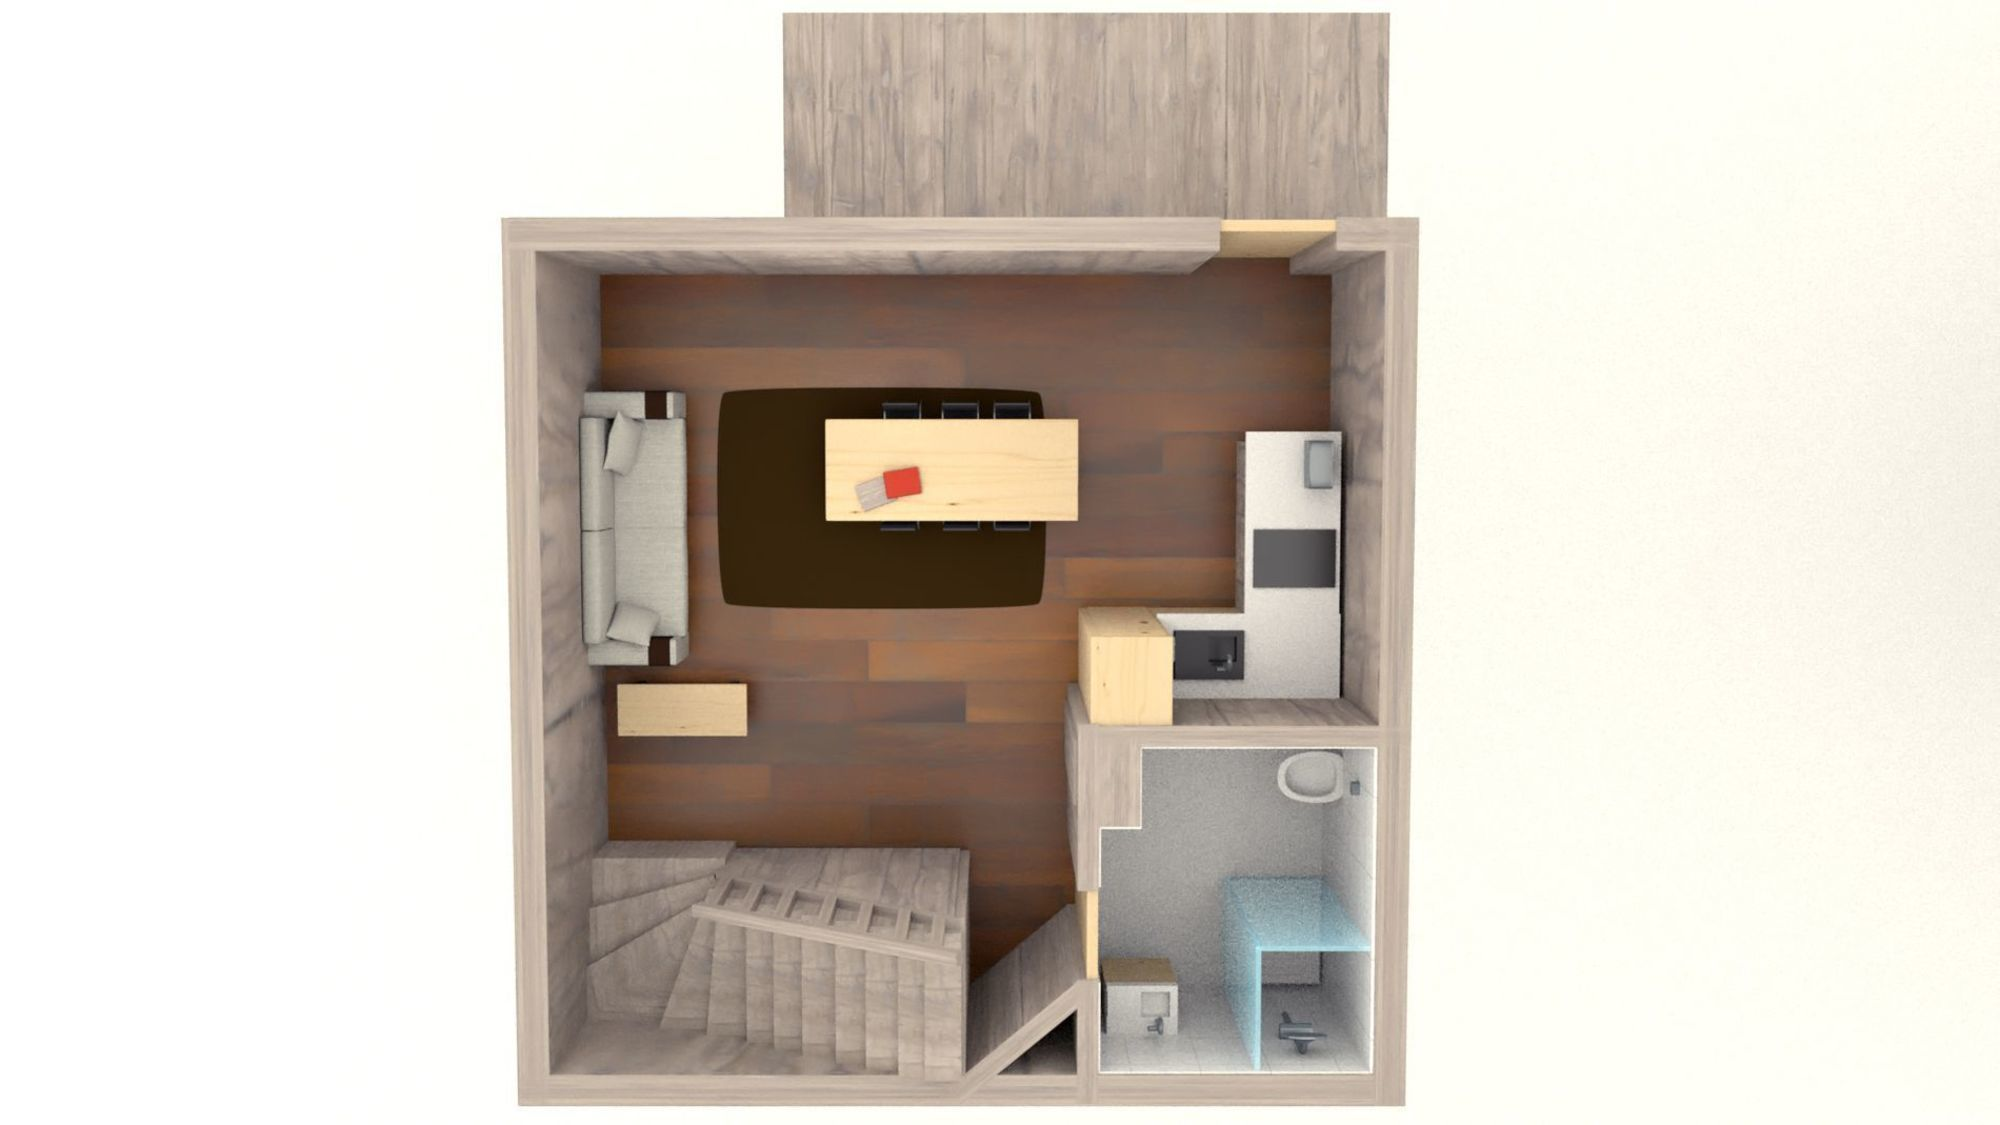 Chalet Mazot Meribel Floor Plan 1